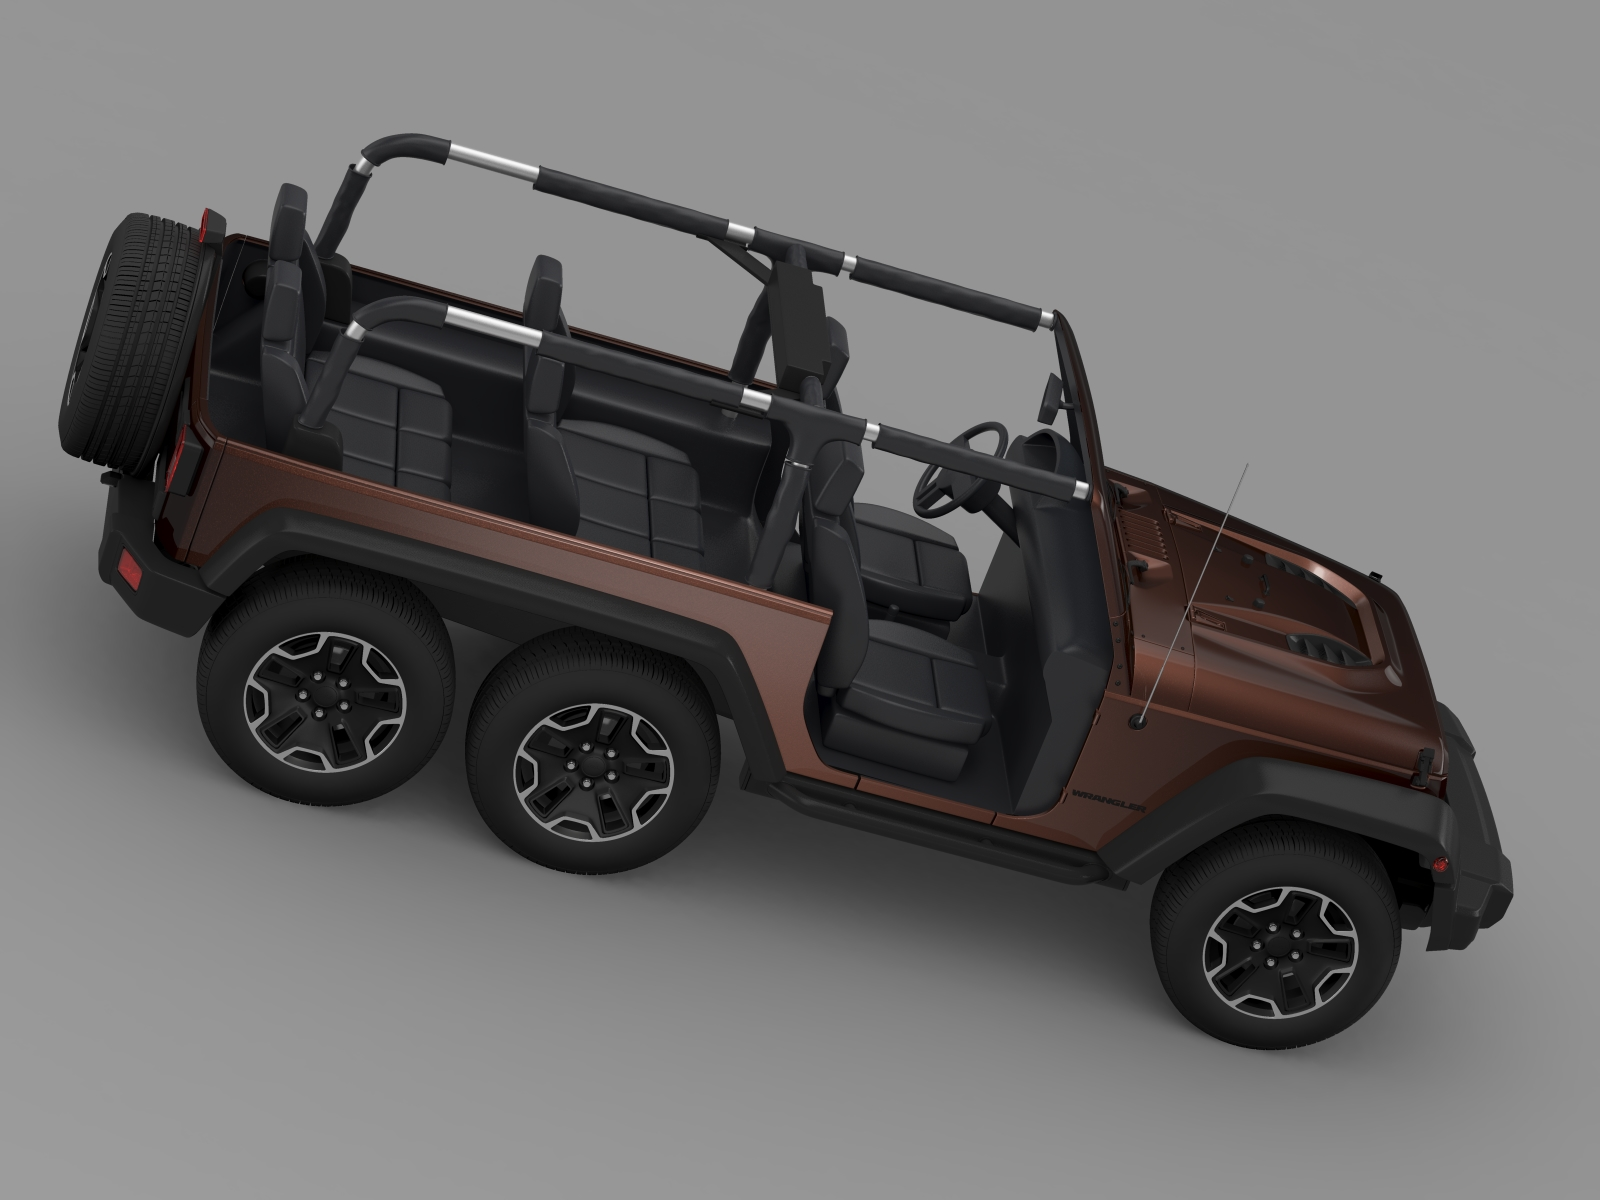 jeep wrangler rubicon 6x6 2016 3d model buy jeep wrangler rubicon 6x6 2016 3d model flatpyramid. Black Bedroom Furniture Sets. Home Design Ideas